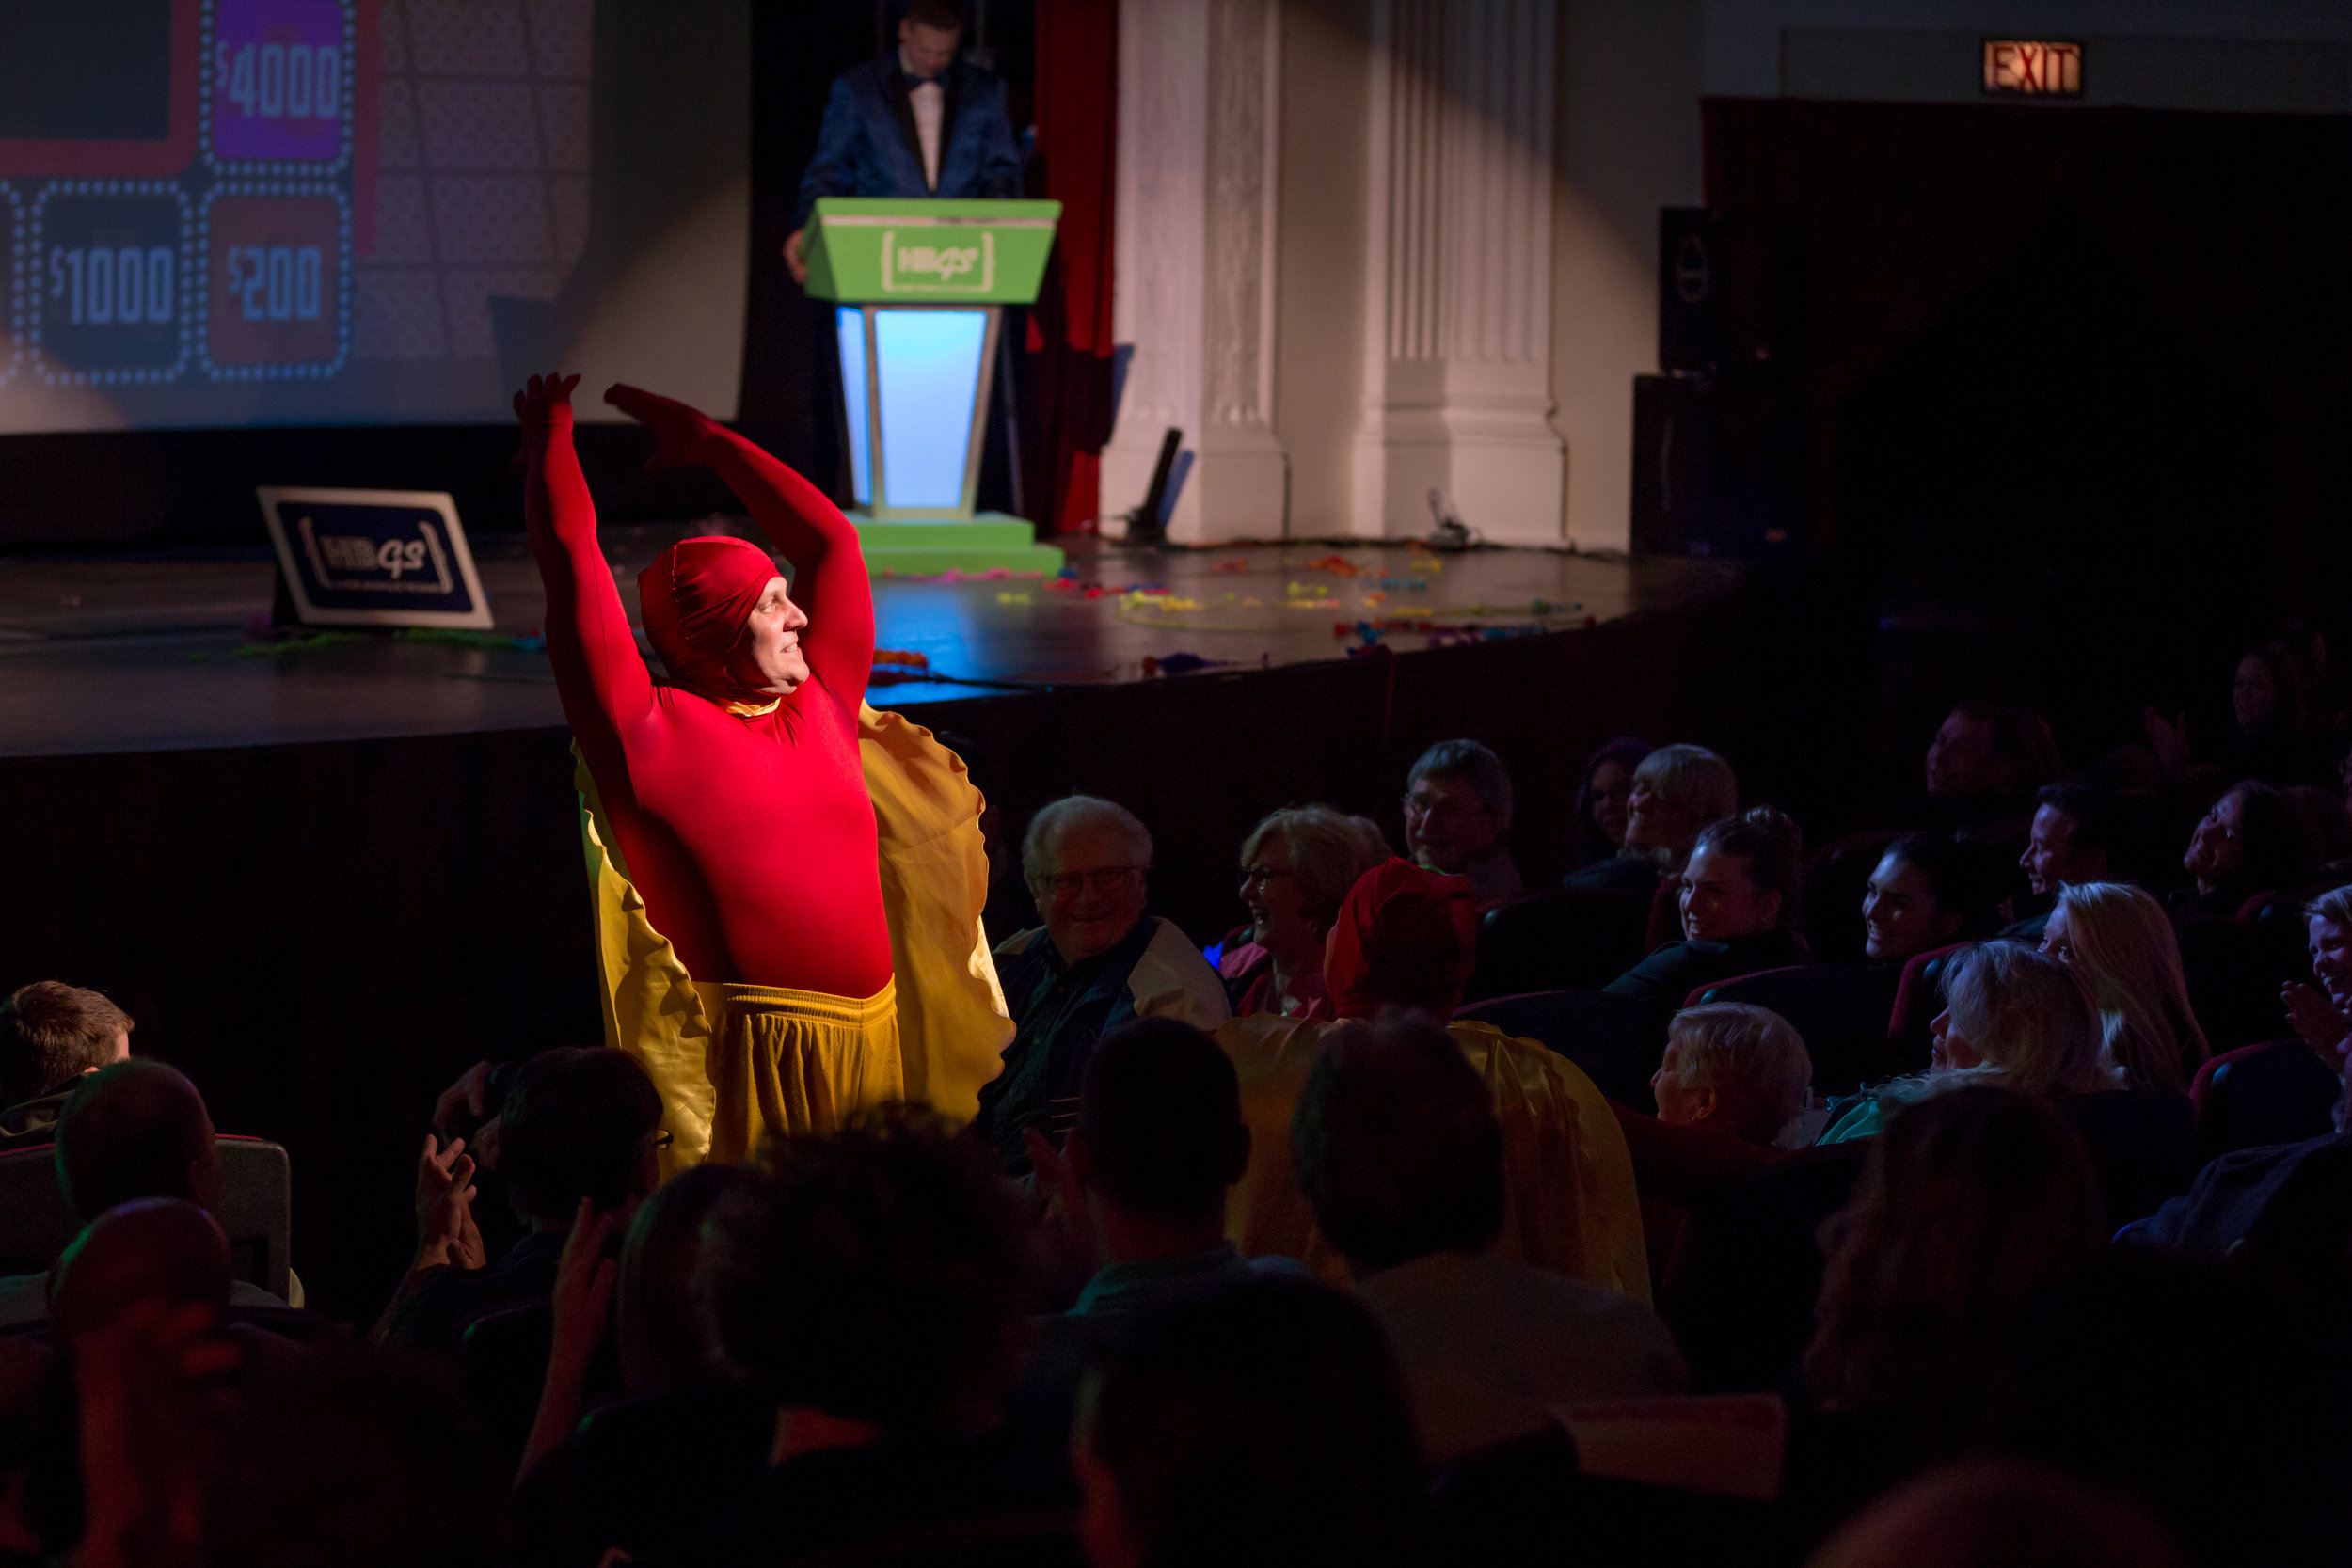 Ed Klump, Whammy #2, entertains the crowd during the show.